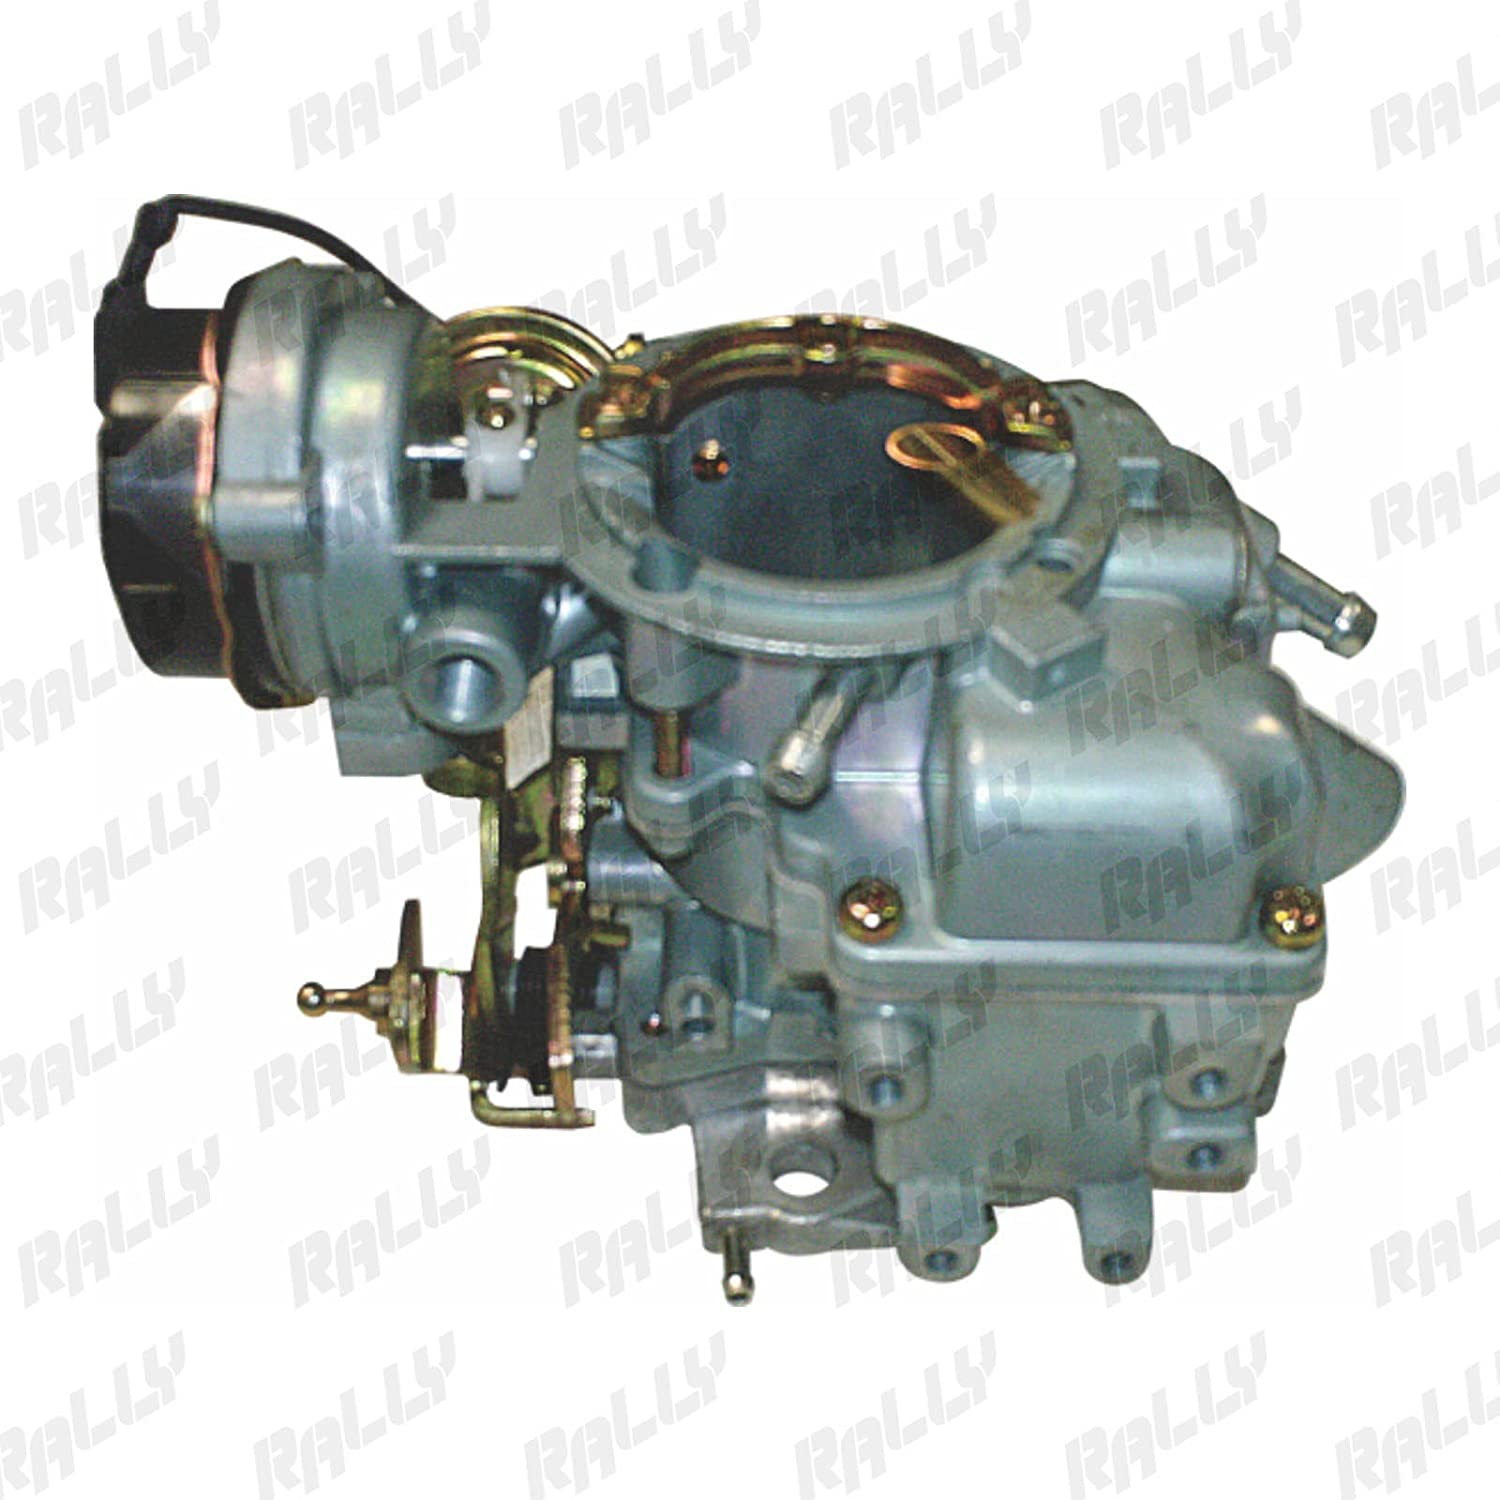 162 Carburetor Type Carter Ford Yfa E250 F250 Fairmont 1 1980 Bronco Barrel Electric Choke Automotive